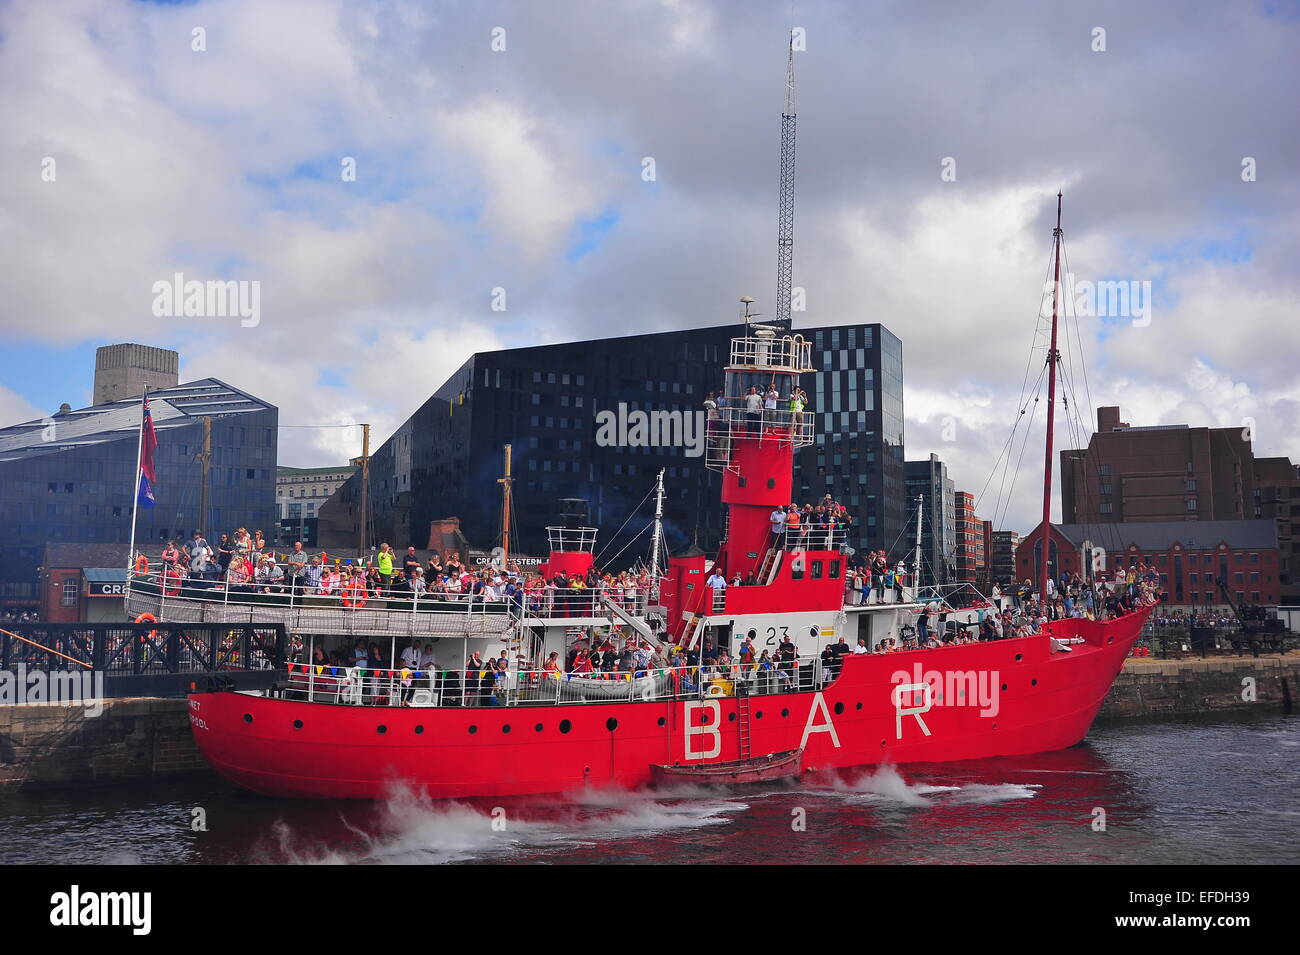 Former Mersey Bar lightship Planet Liverpool being used as a viewing platform for the Royal De-Luxe Giants WW1 Centenary. - Stock Image